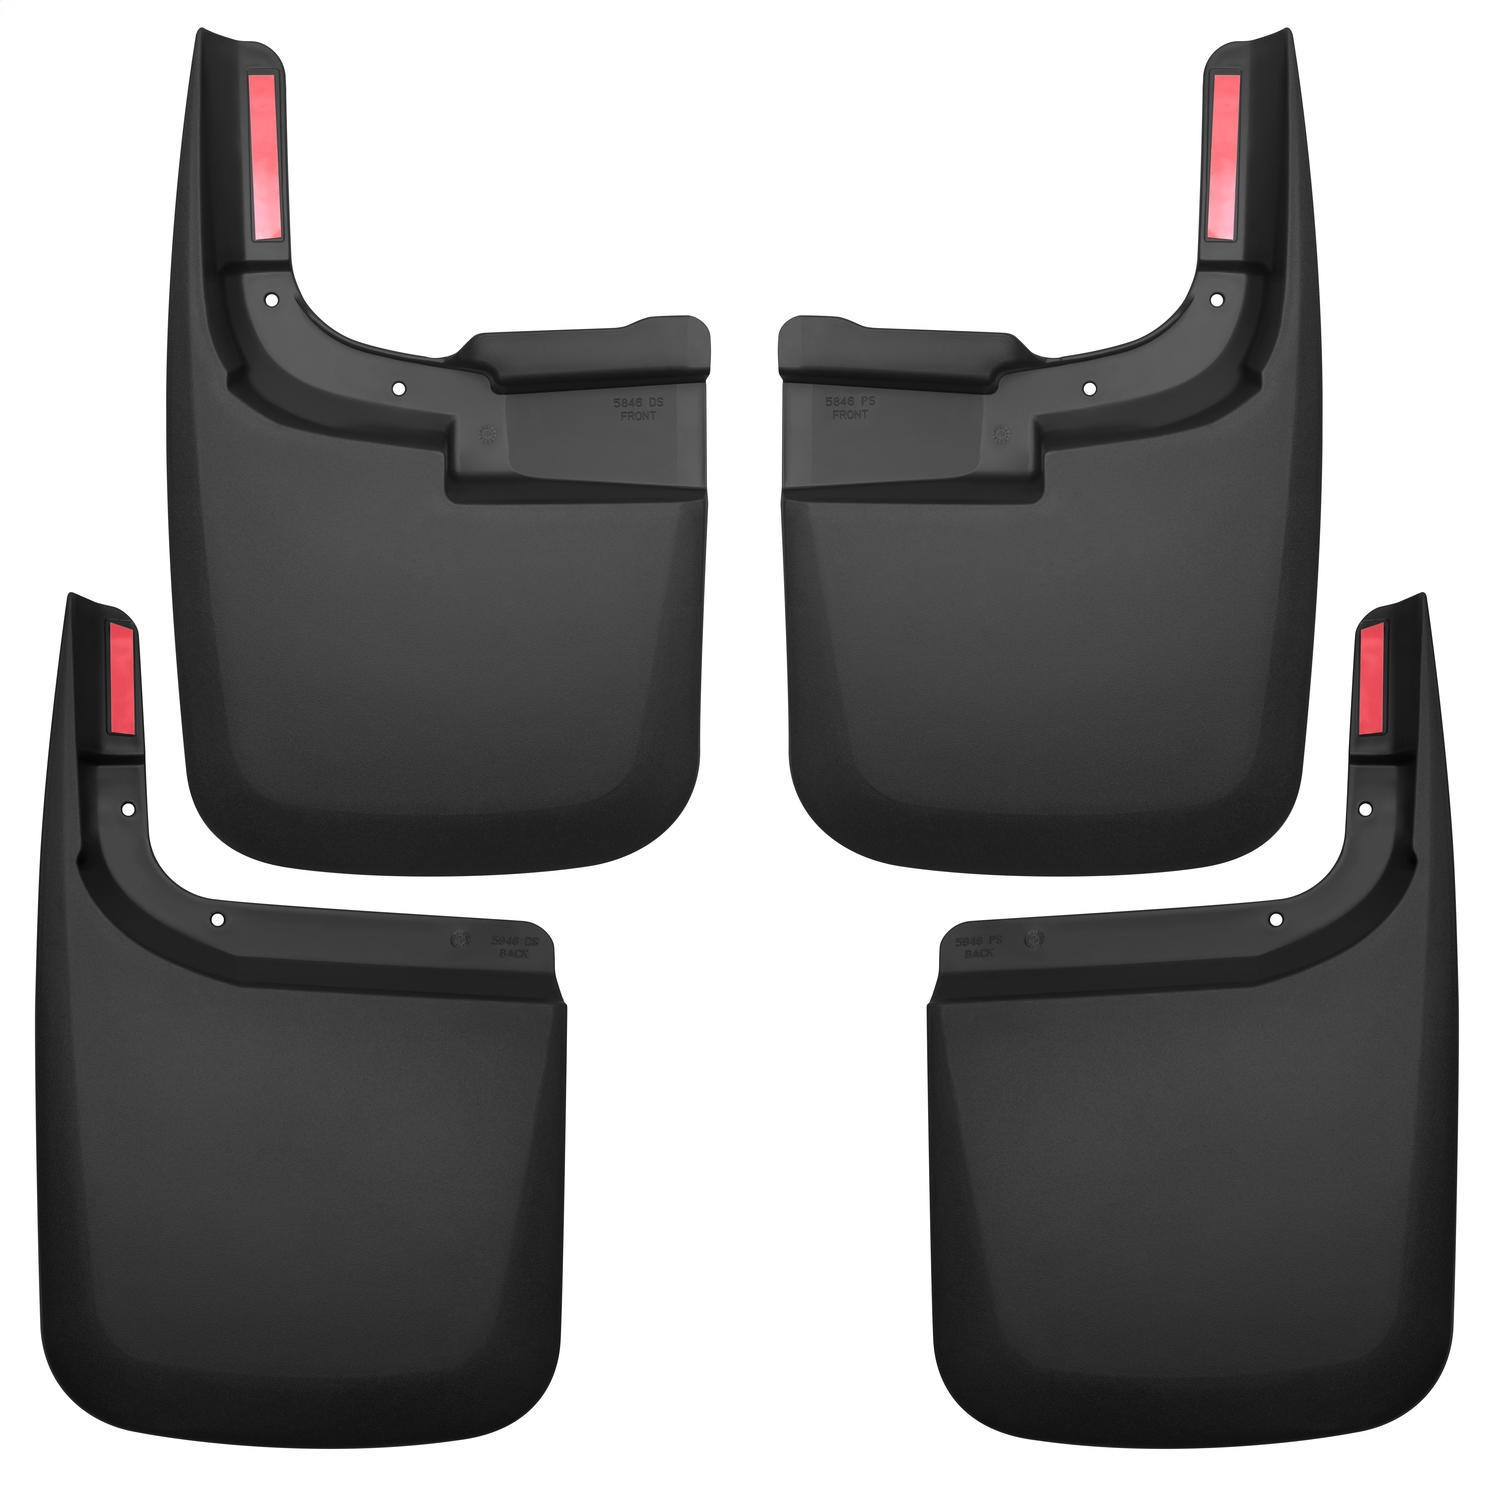 Custom Molded Mud Guard Set, 4 pc., Black, Fits Models w/o Fender Flares, Front And Rear, Incl. Installation Kit